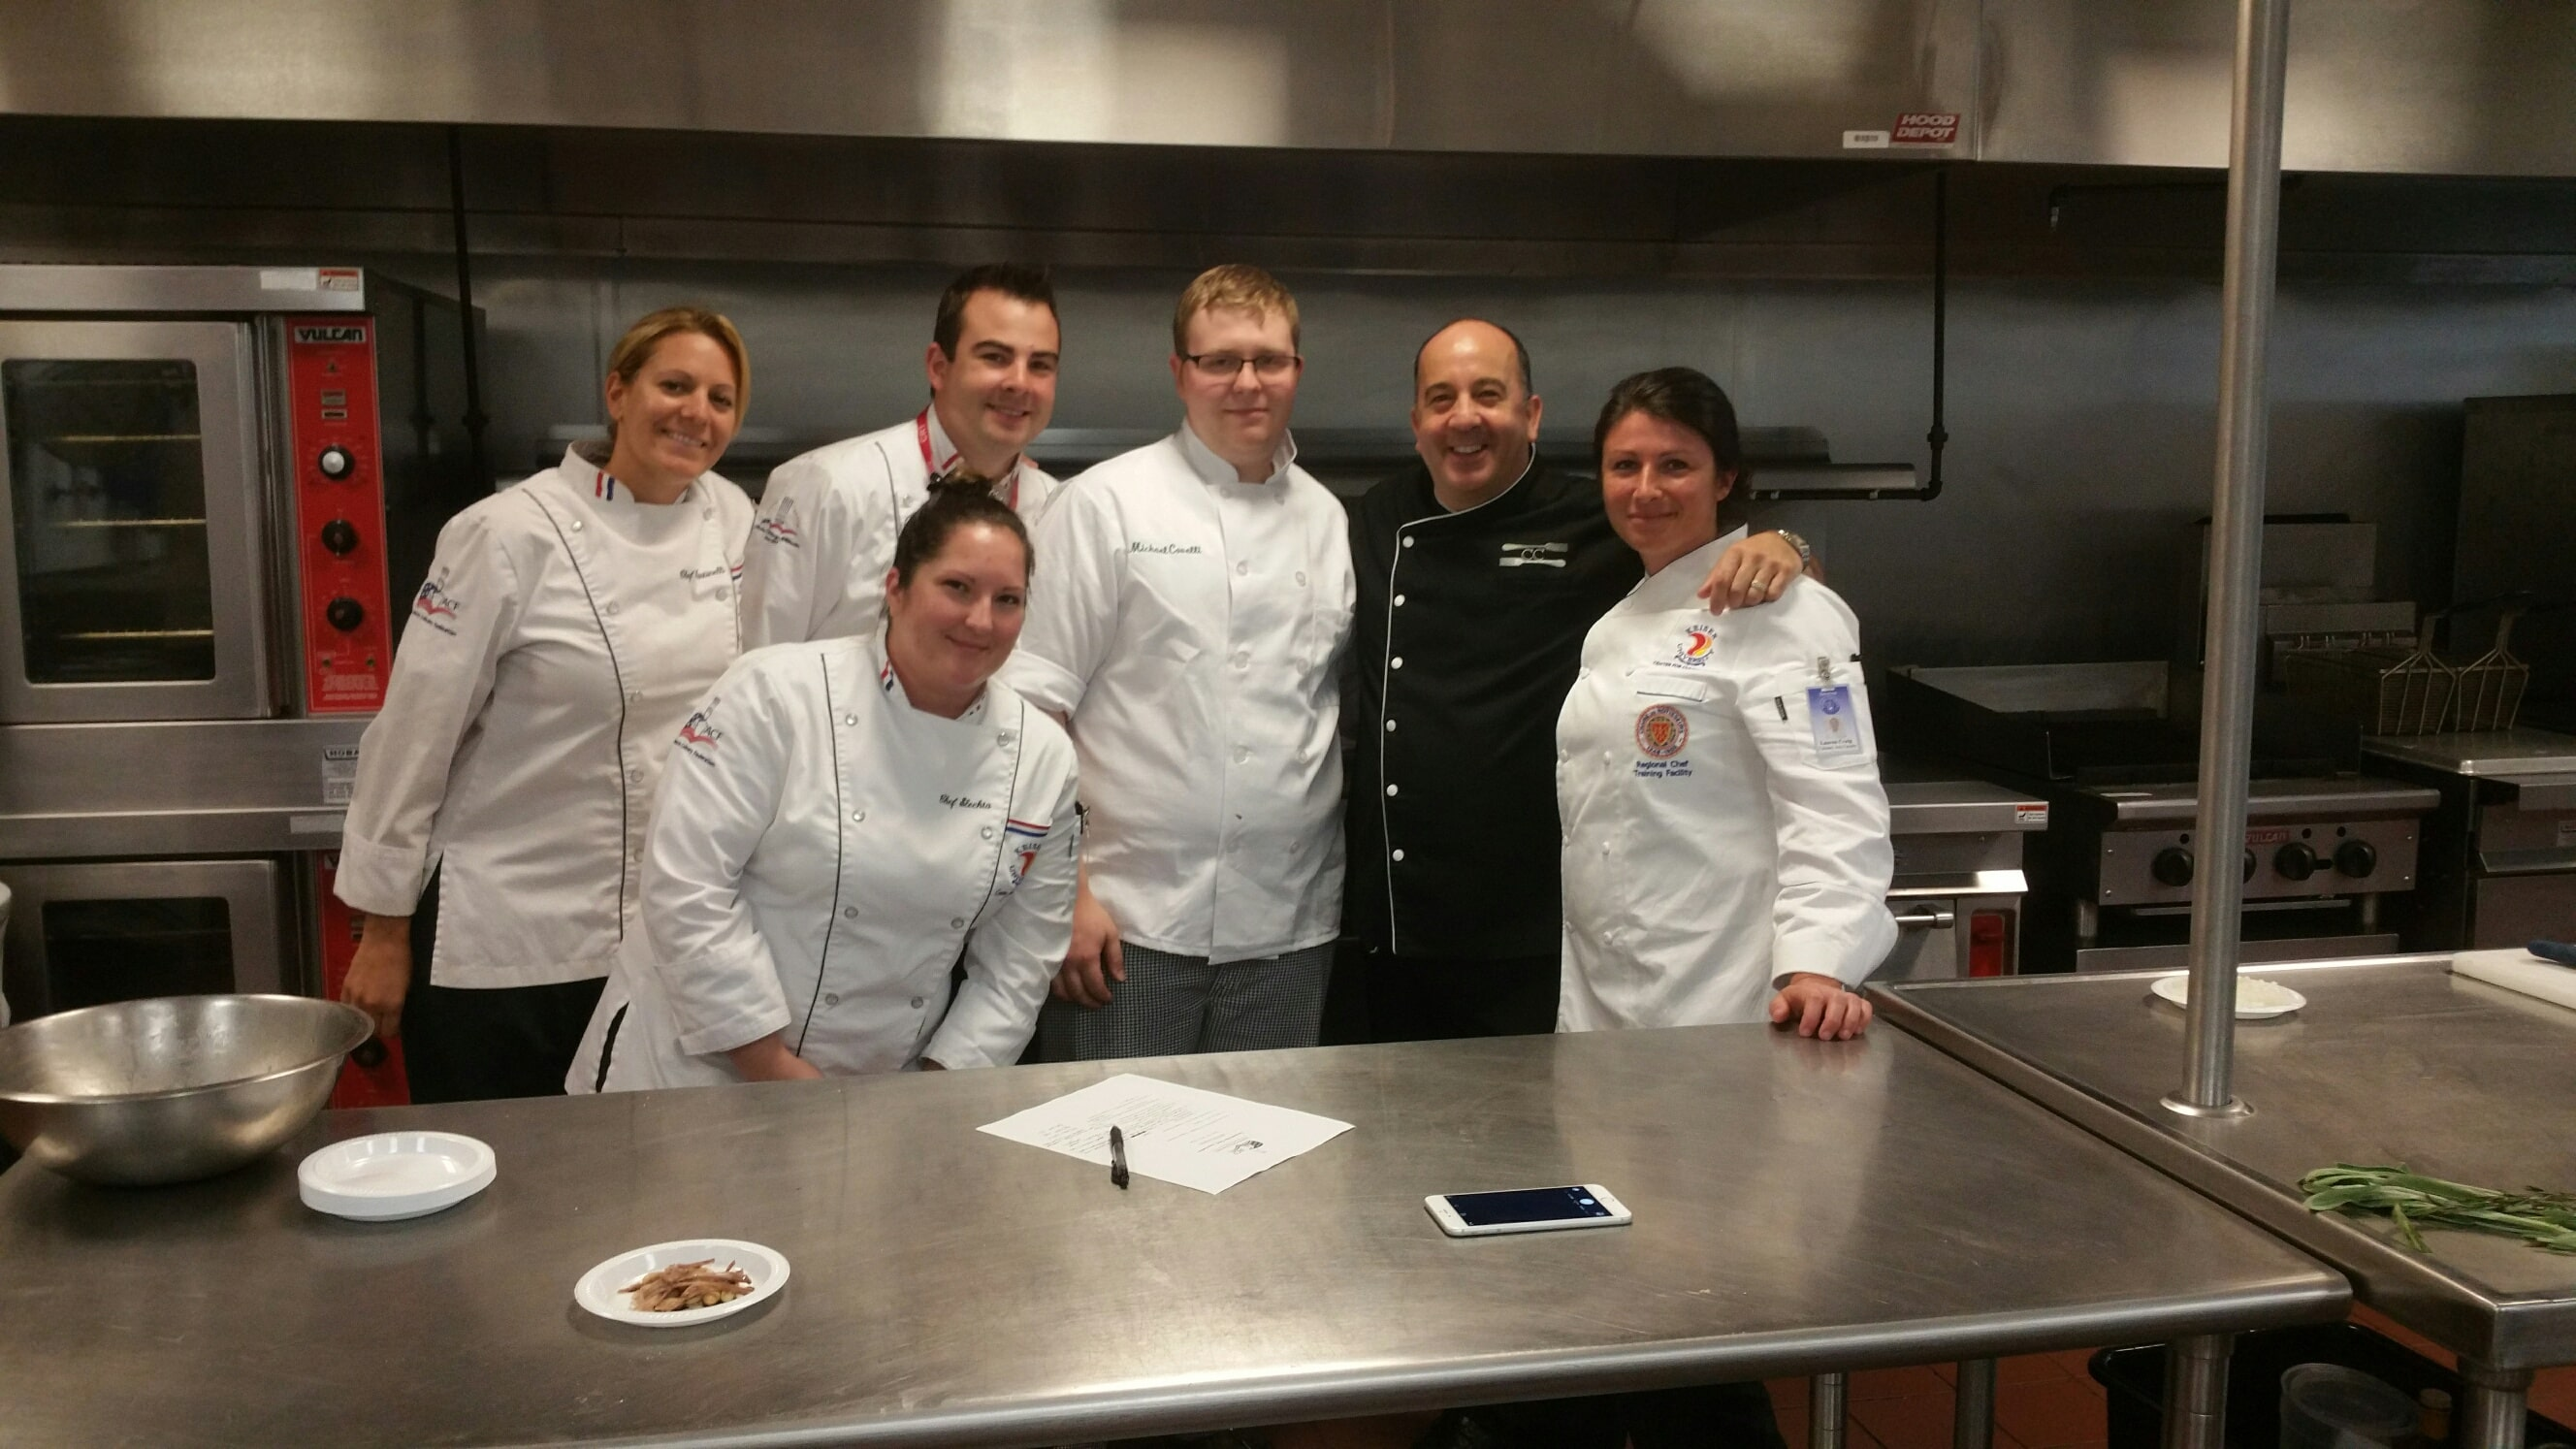 Sarasota's Center for Culinary Arts Hosts the ACF Sarasota Bay Chefs Association